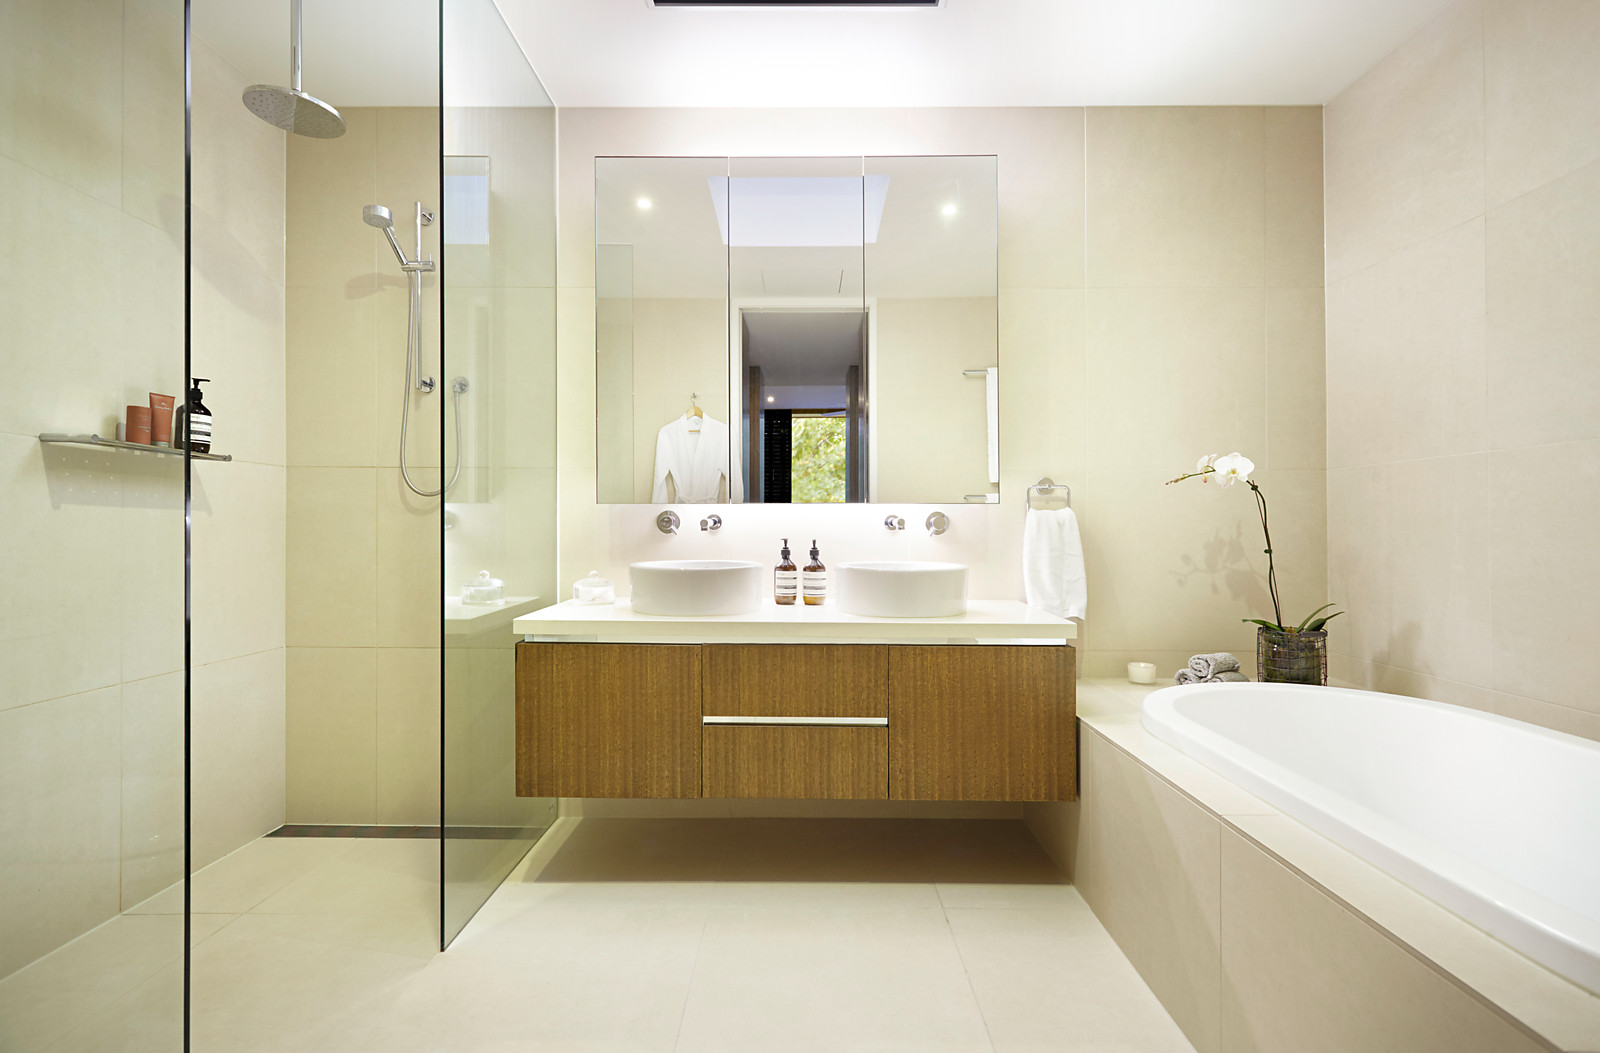 Renovating wet areas: What can you do yourself?